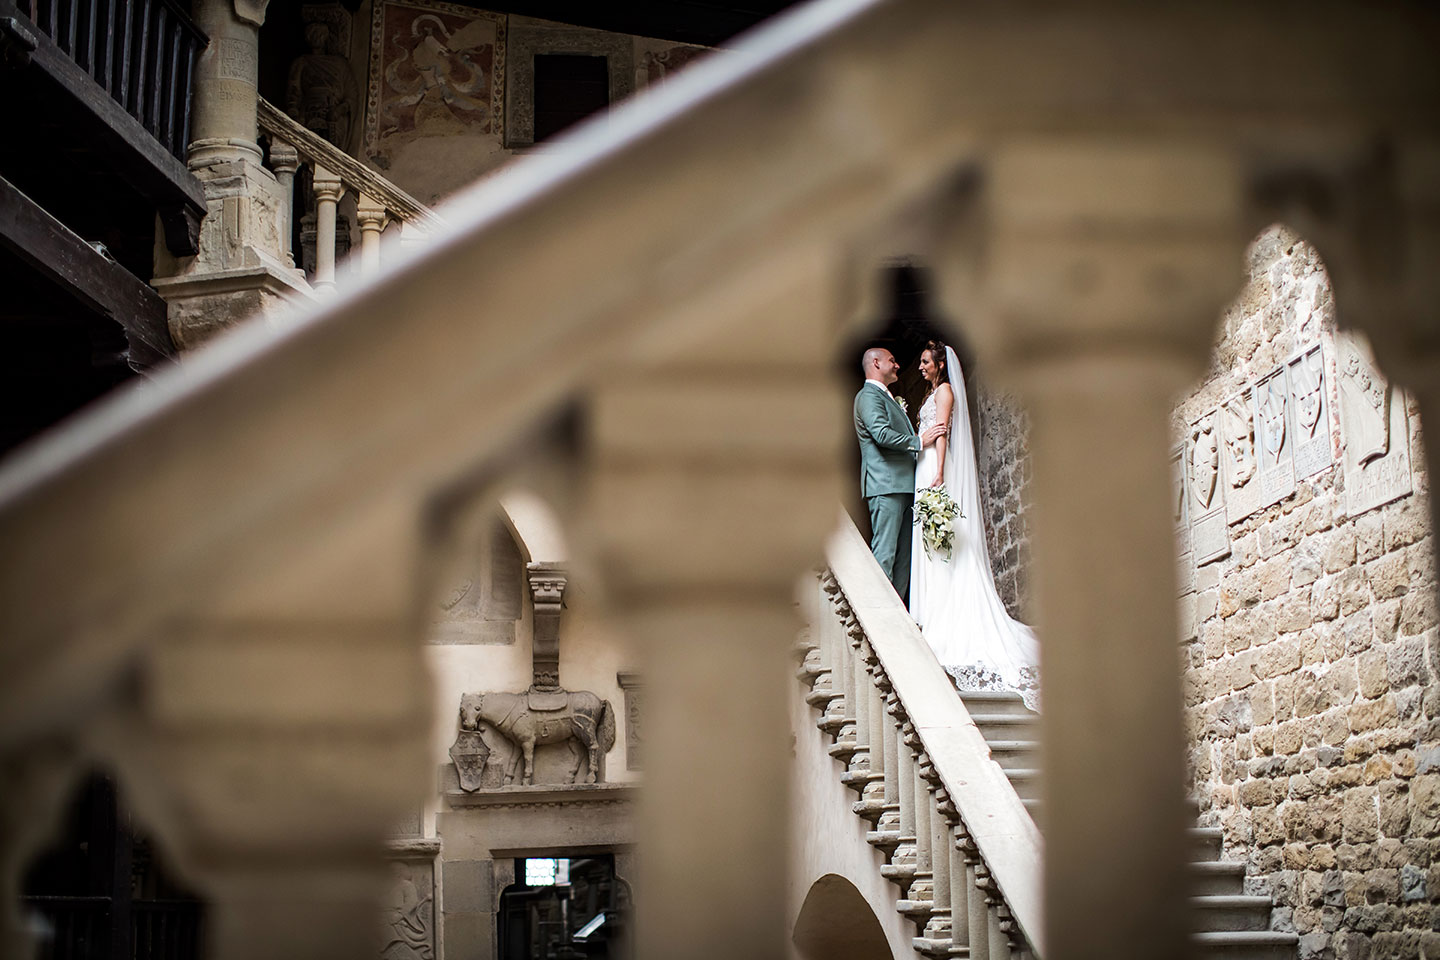 Wedding shoot at Poppi Castle